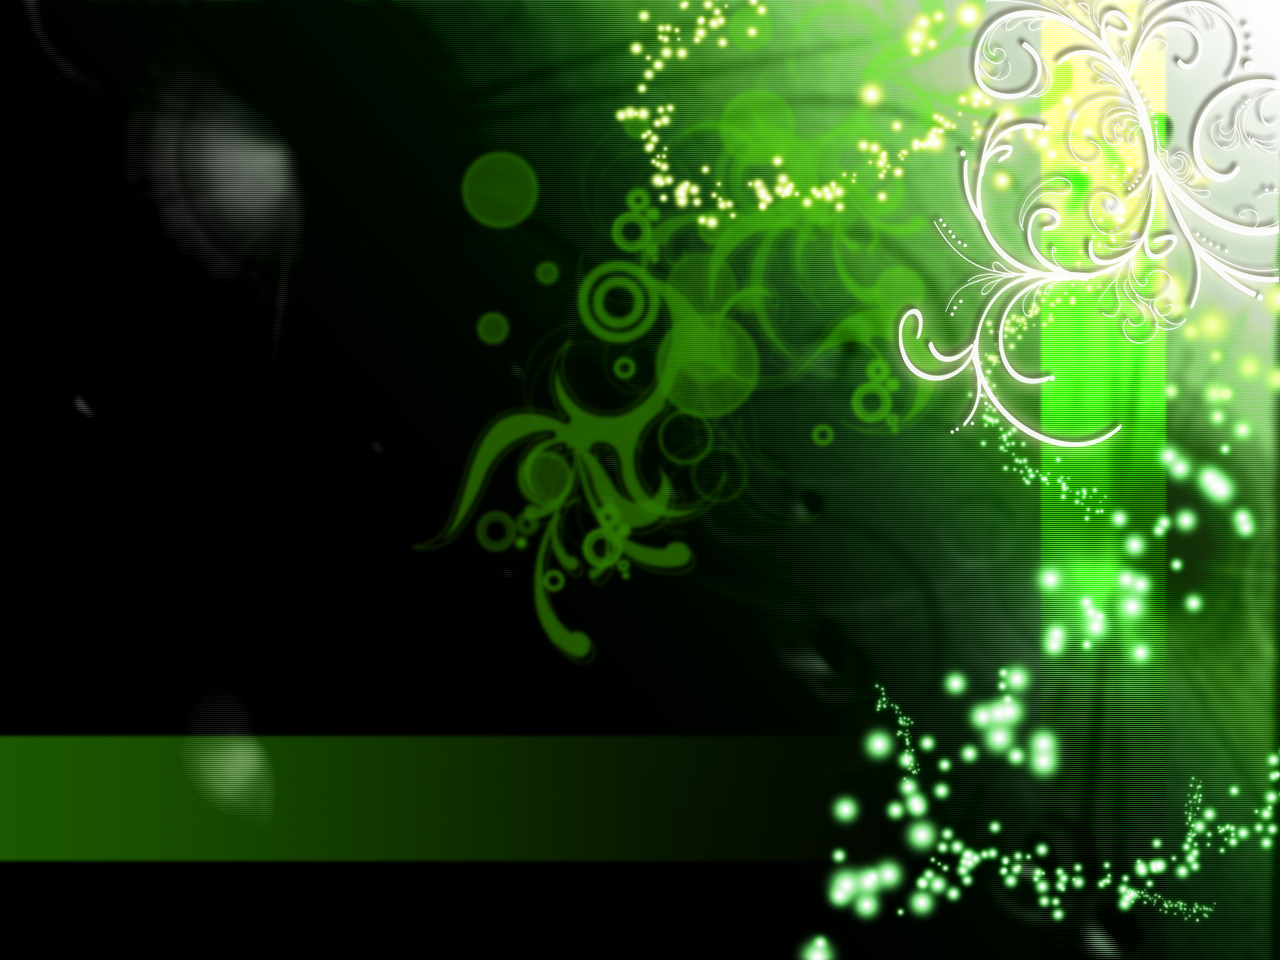 SoMetHinG NeW Green Flower Wallpaper 1280x960